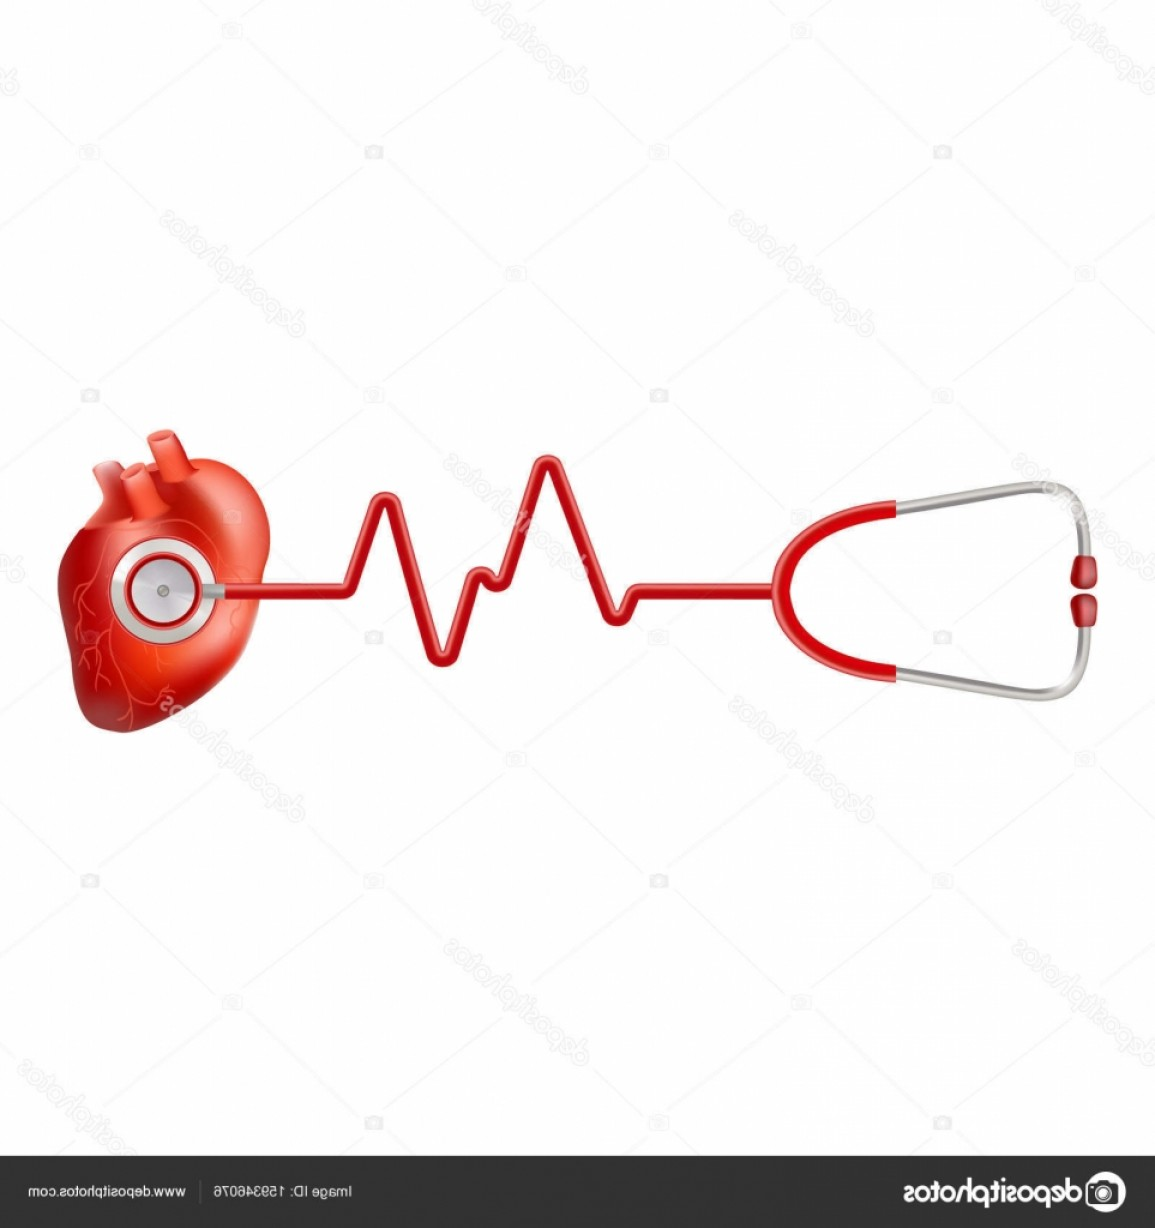 Heart Stethoscope With EKG Lines Vector: Stock Illustration Human Heart And Heart Beat